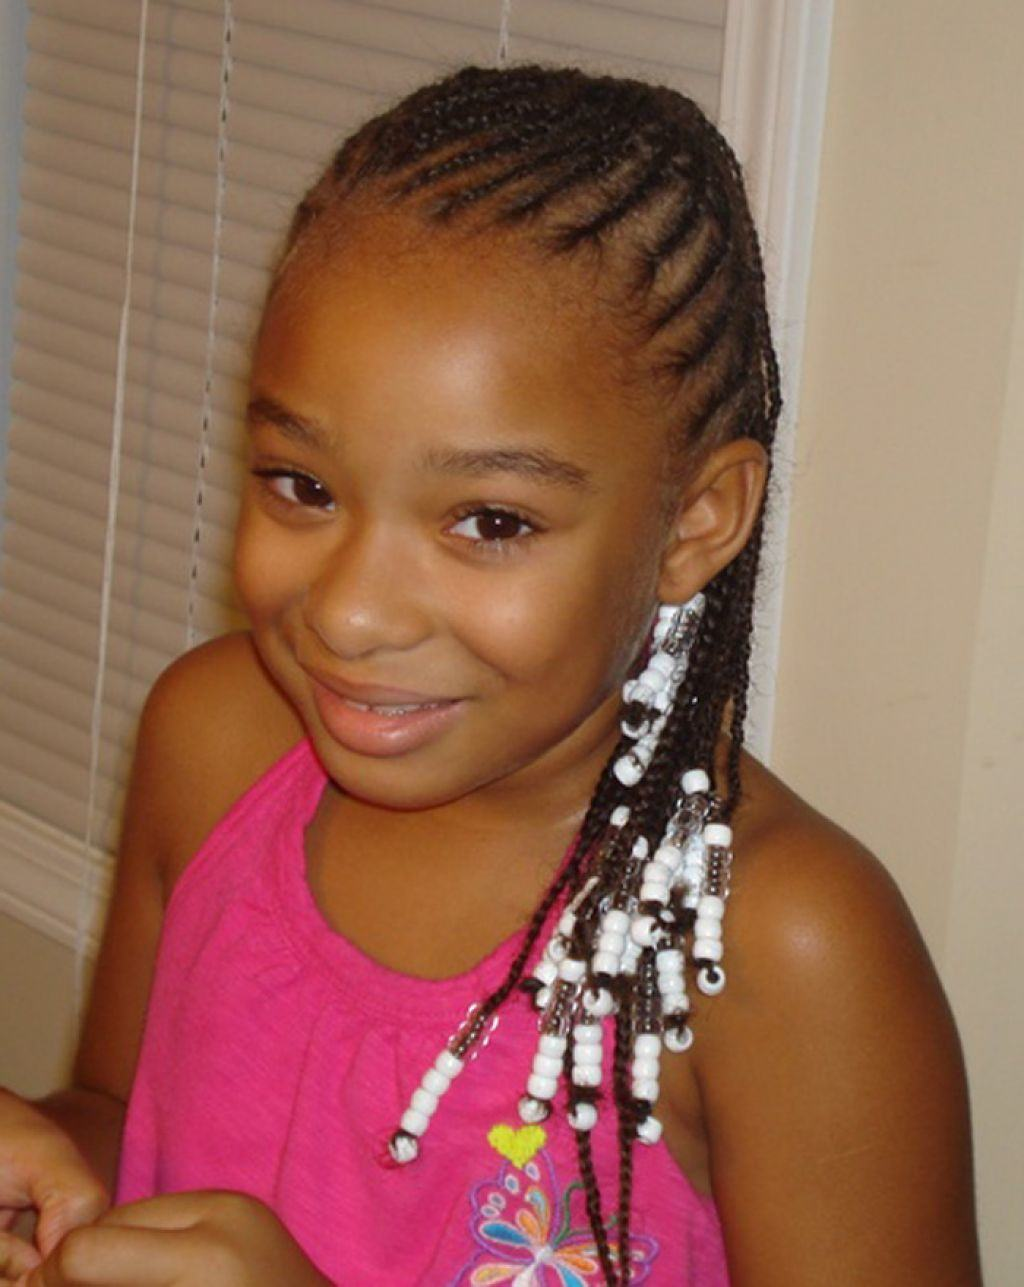 Braids Hairstyles For Kids White Girls Easy Braid Haristyles